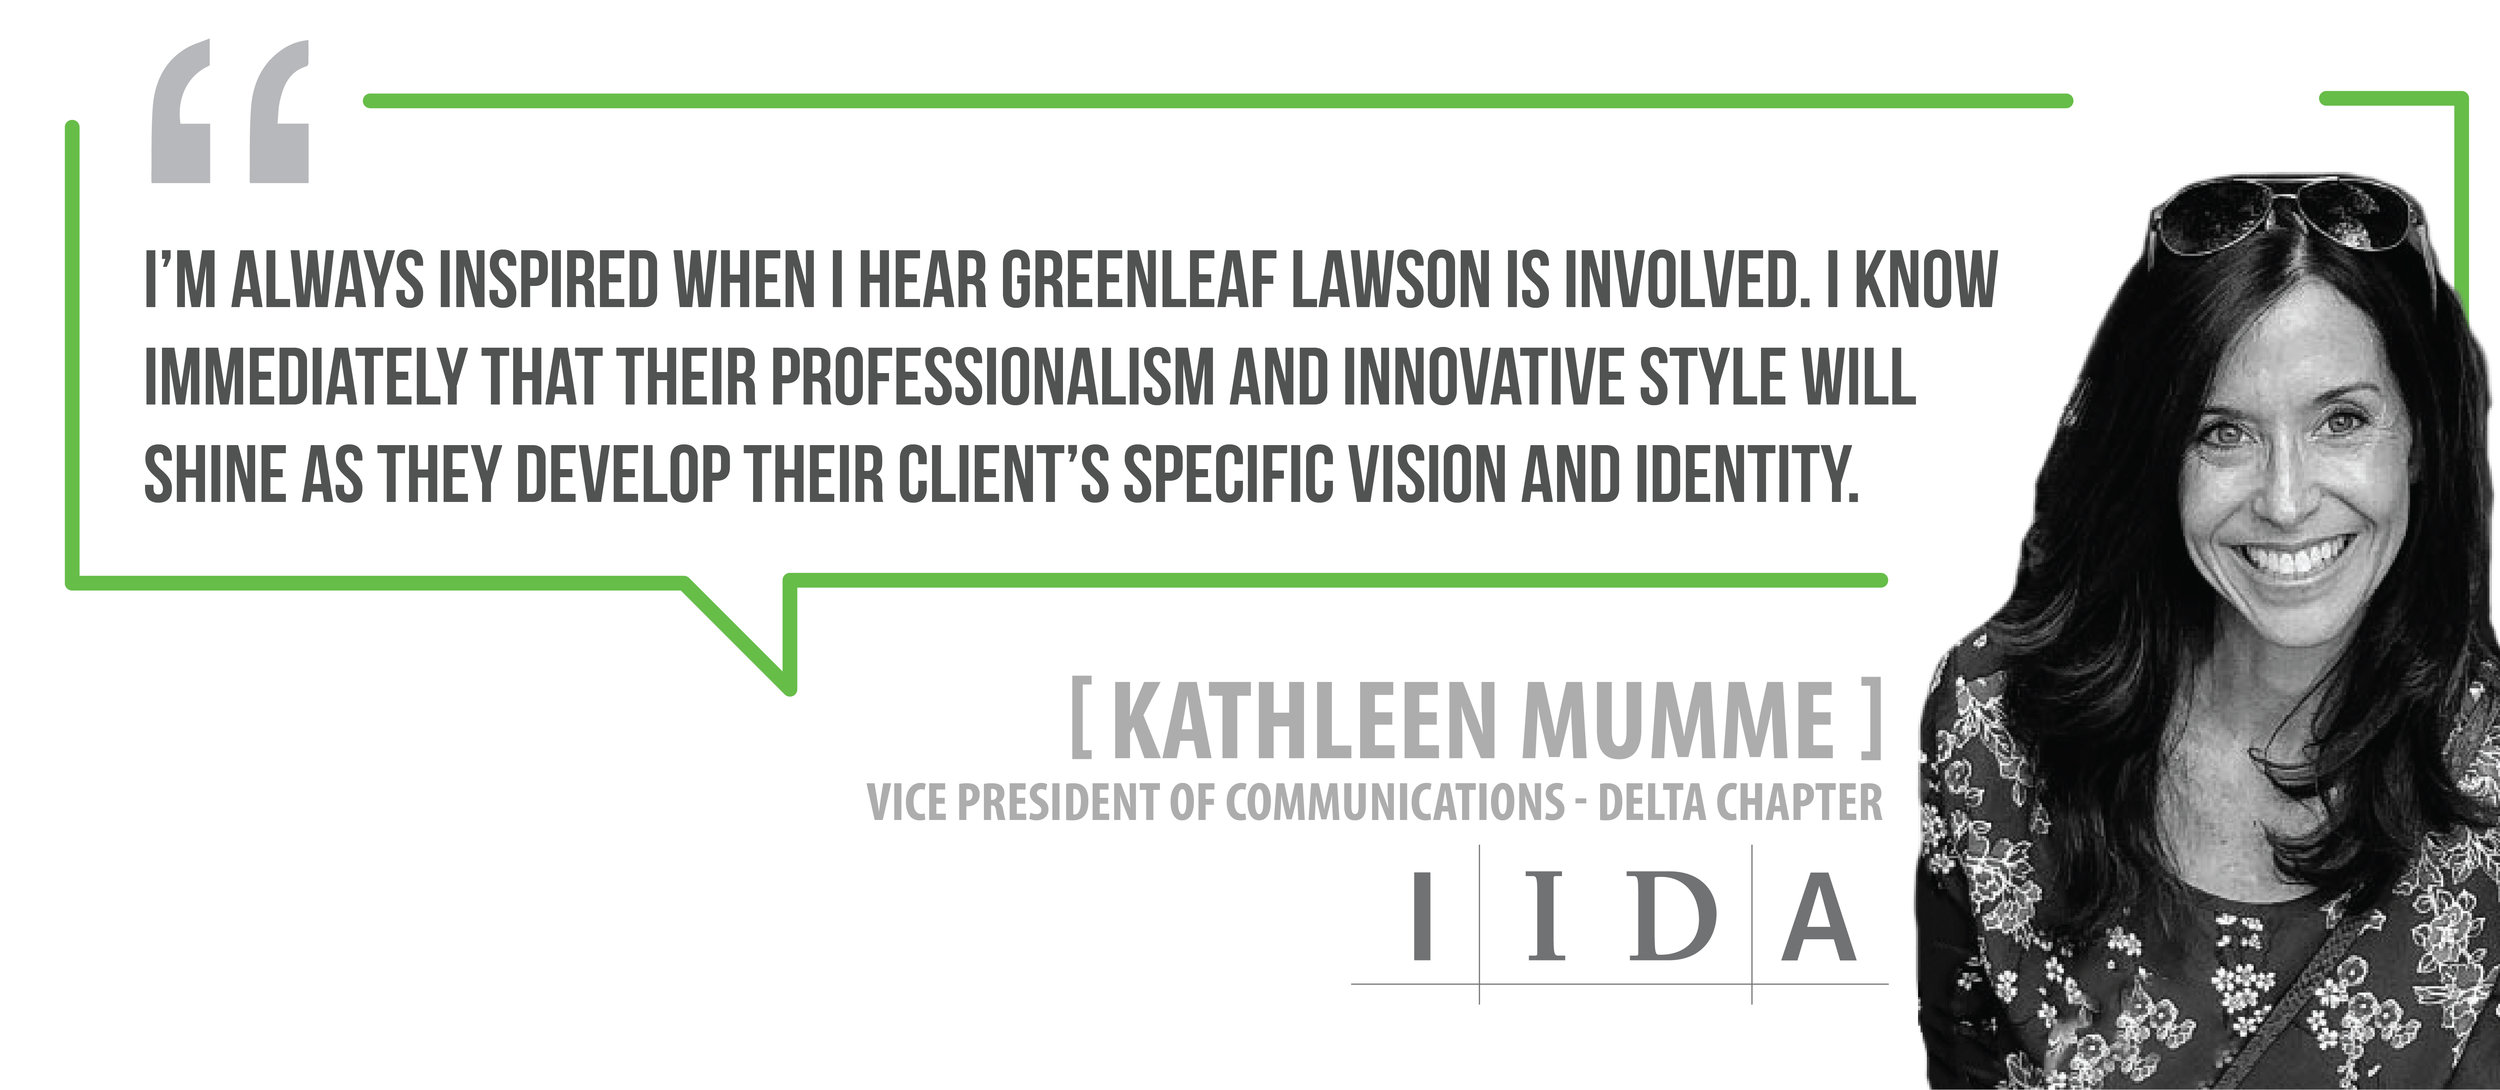 Greenleaf_Lawson_Architects-Testimonials-03.jpg